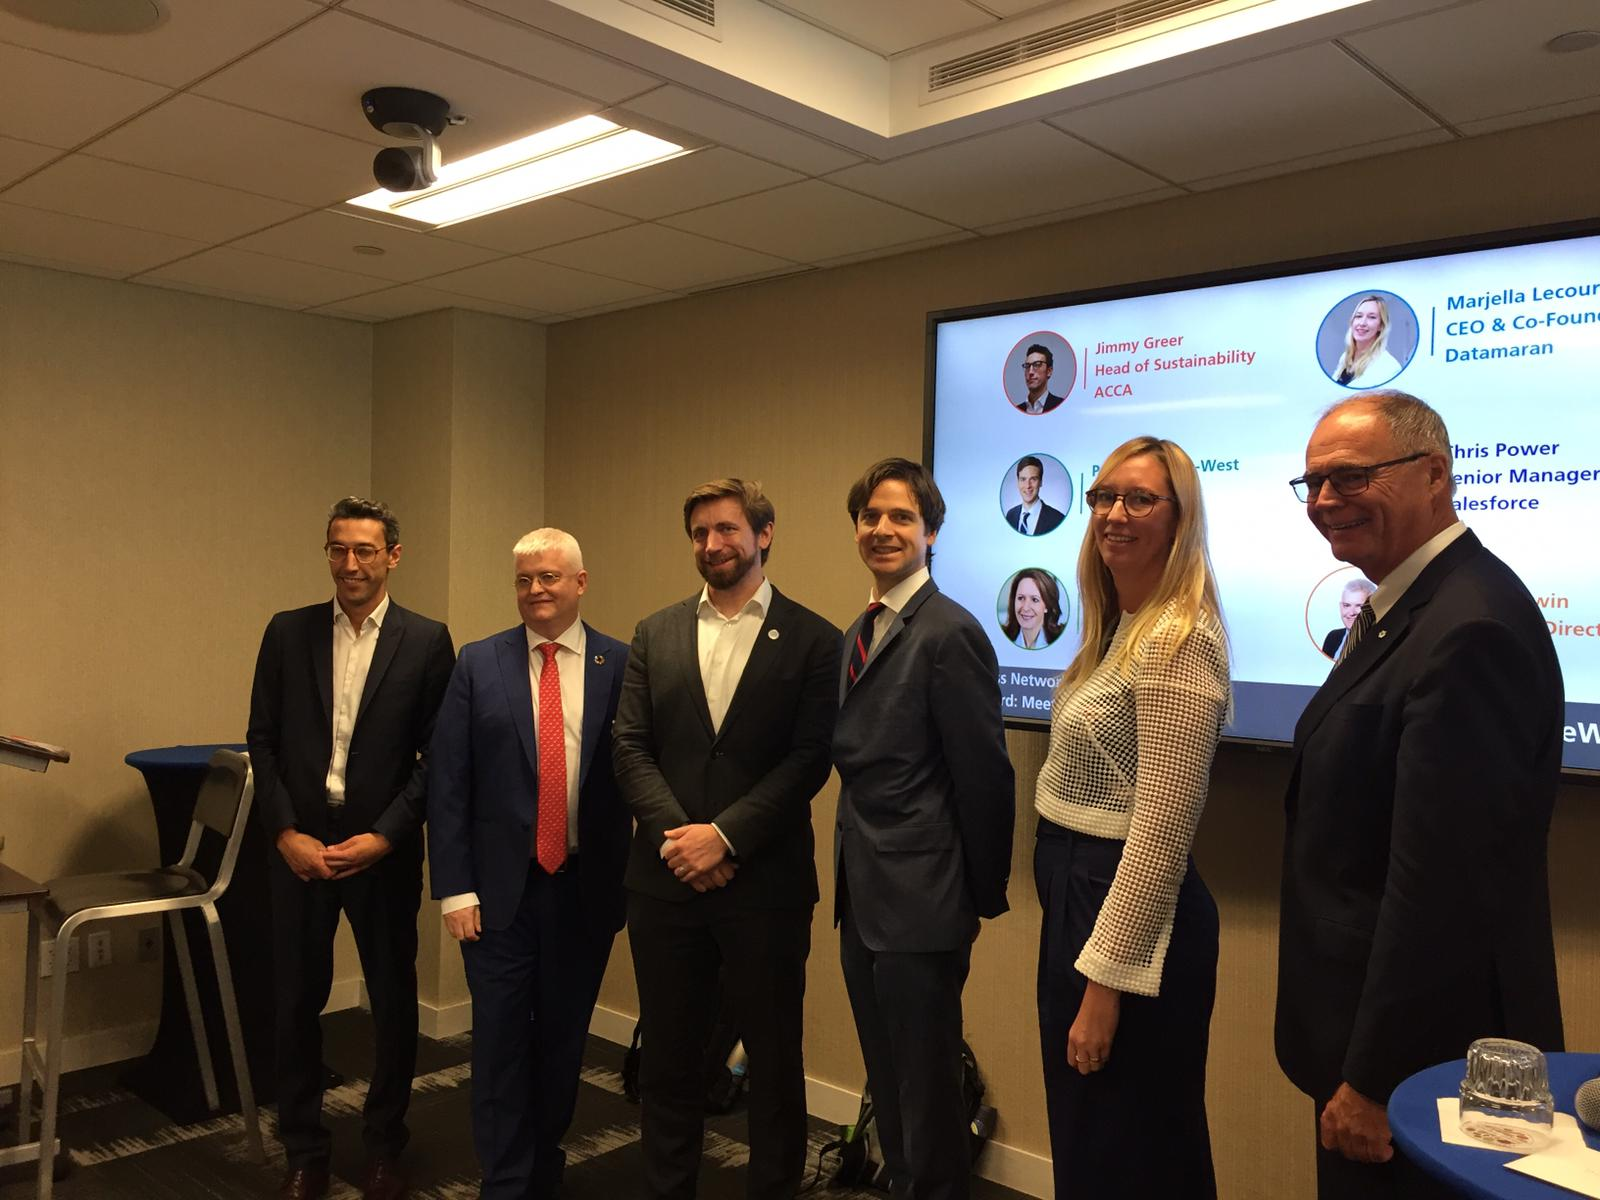 Creating Value in a Climate Emergency: Datamaran at Climate Week NYC